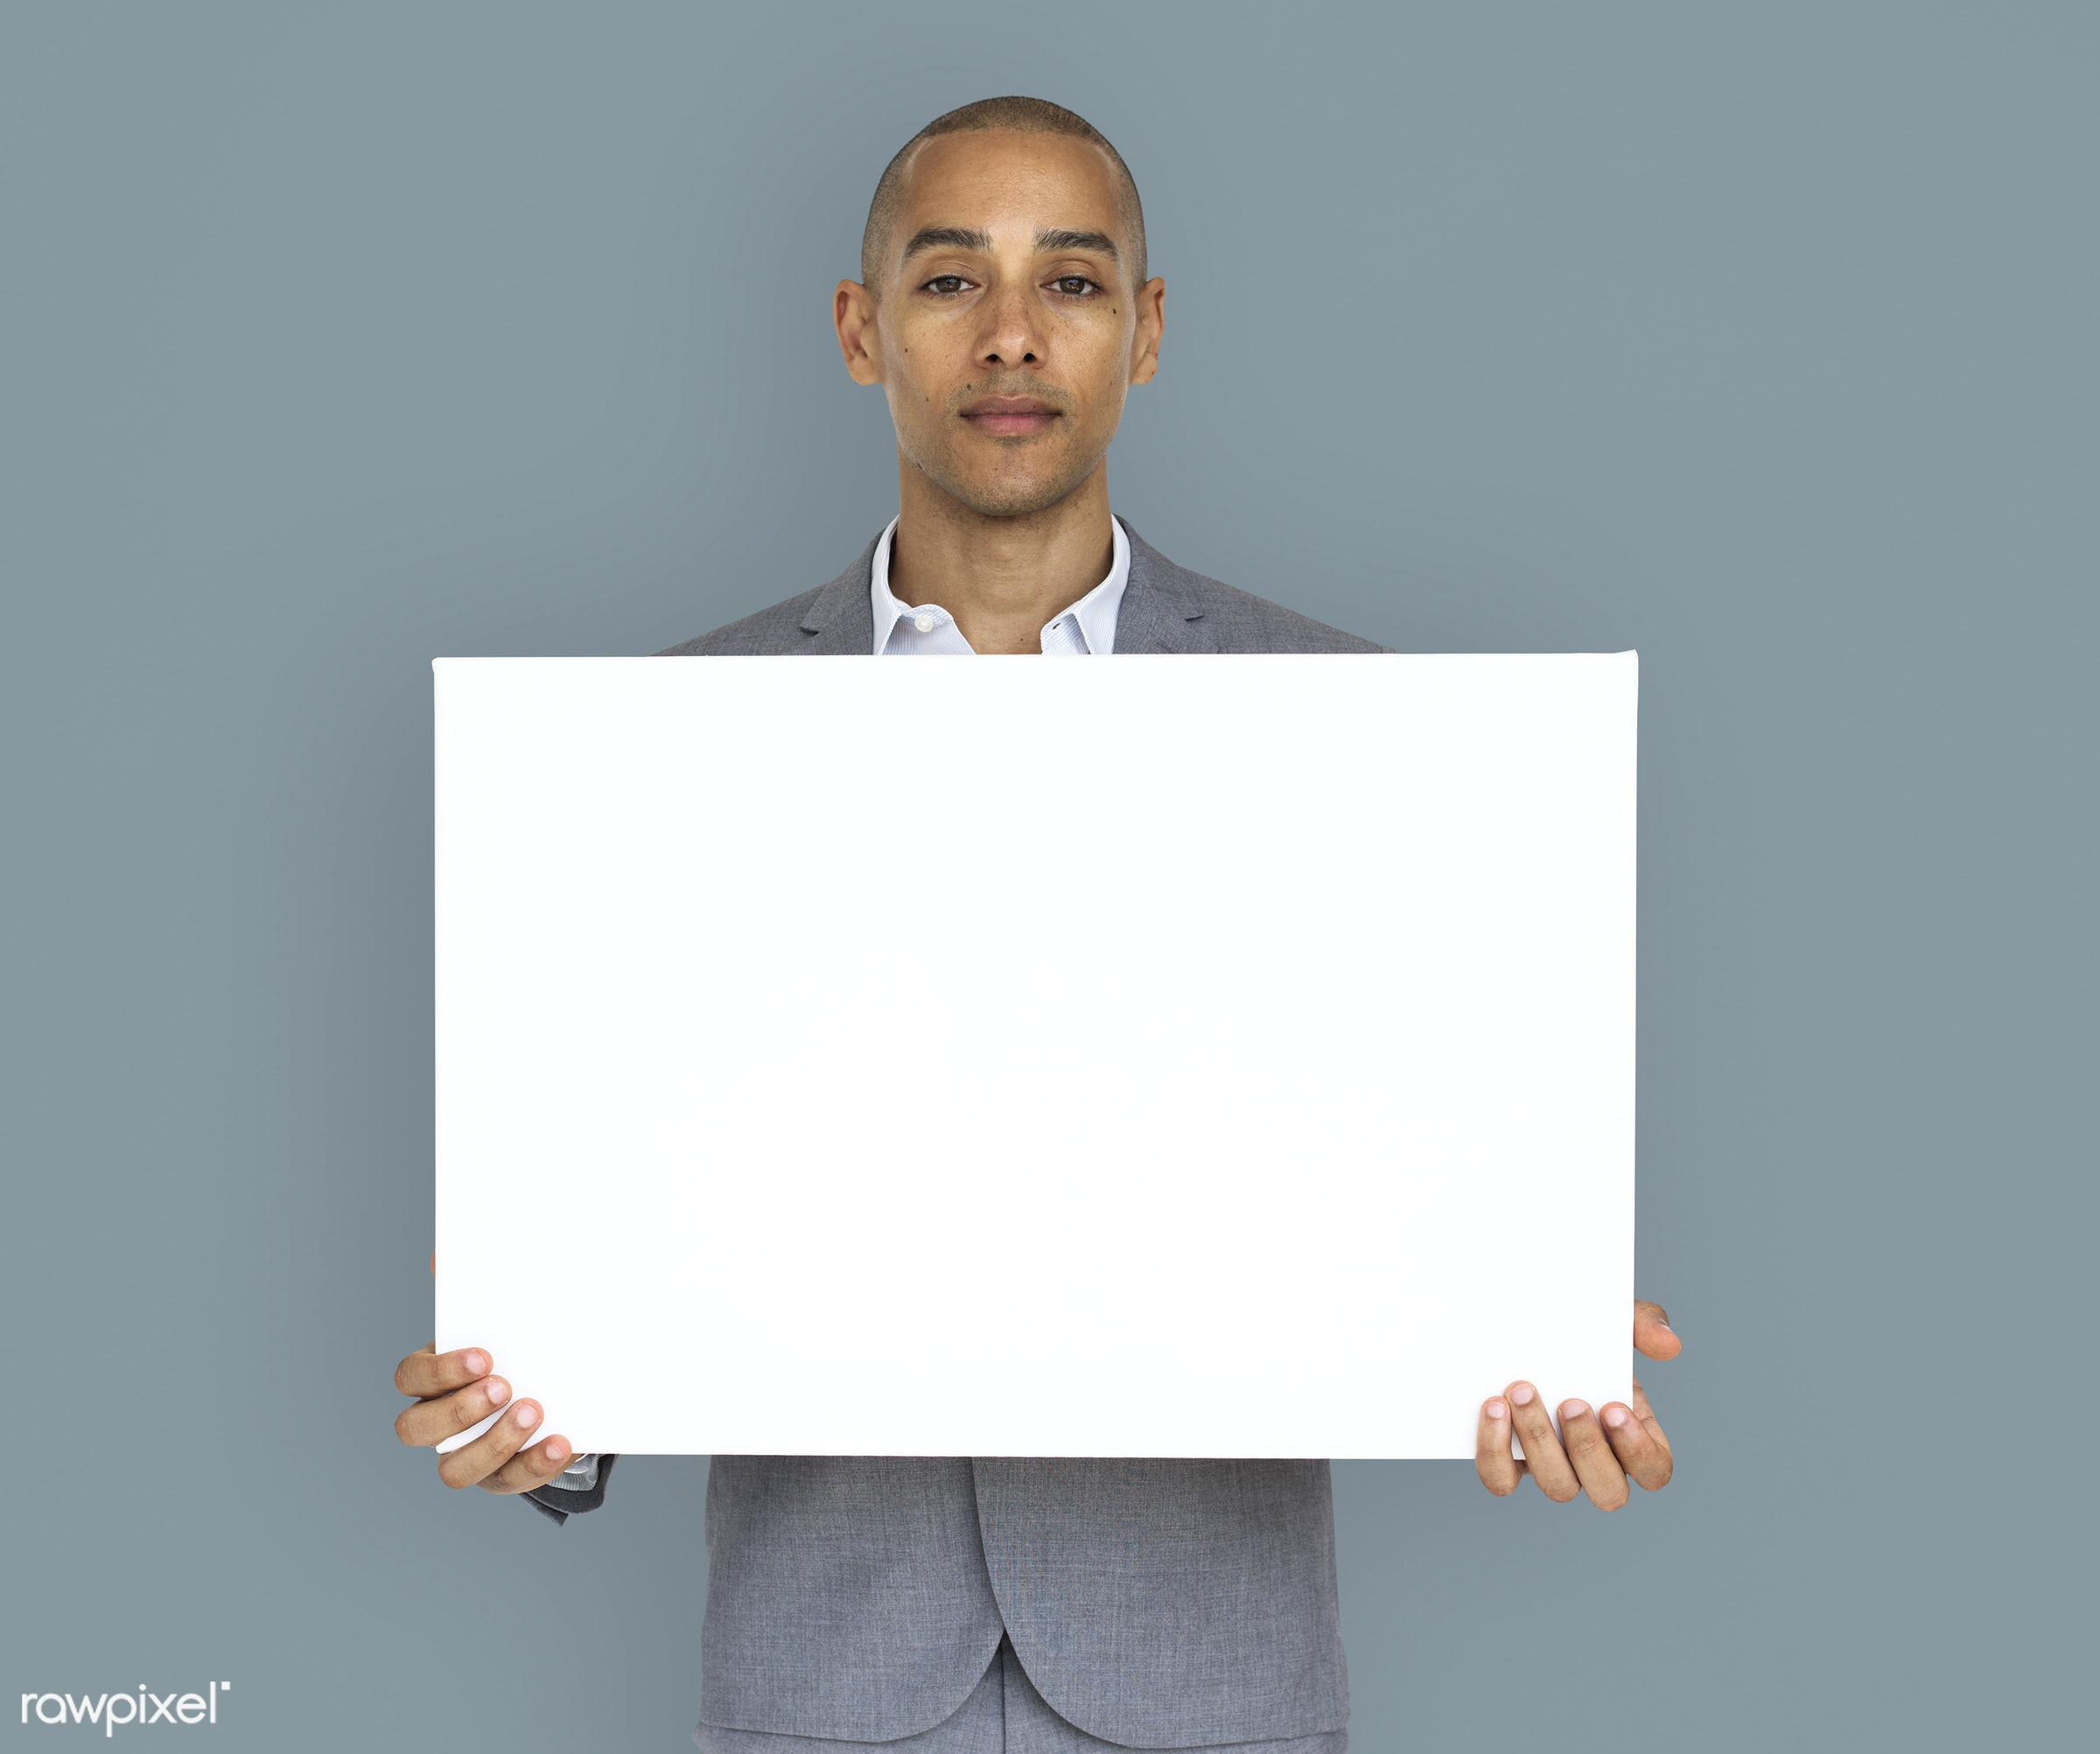 expression, studio, copy space, person, holding, people, business, placard, businessman, grey, mixed race, man, banner,...